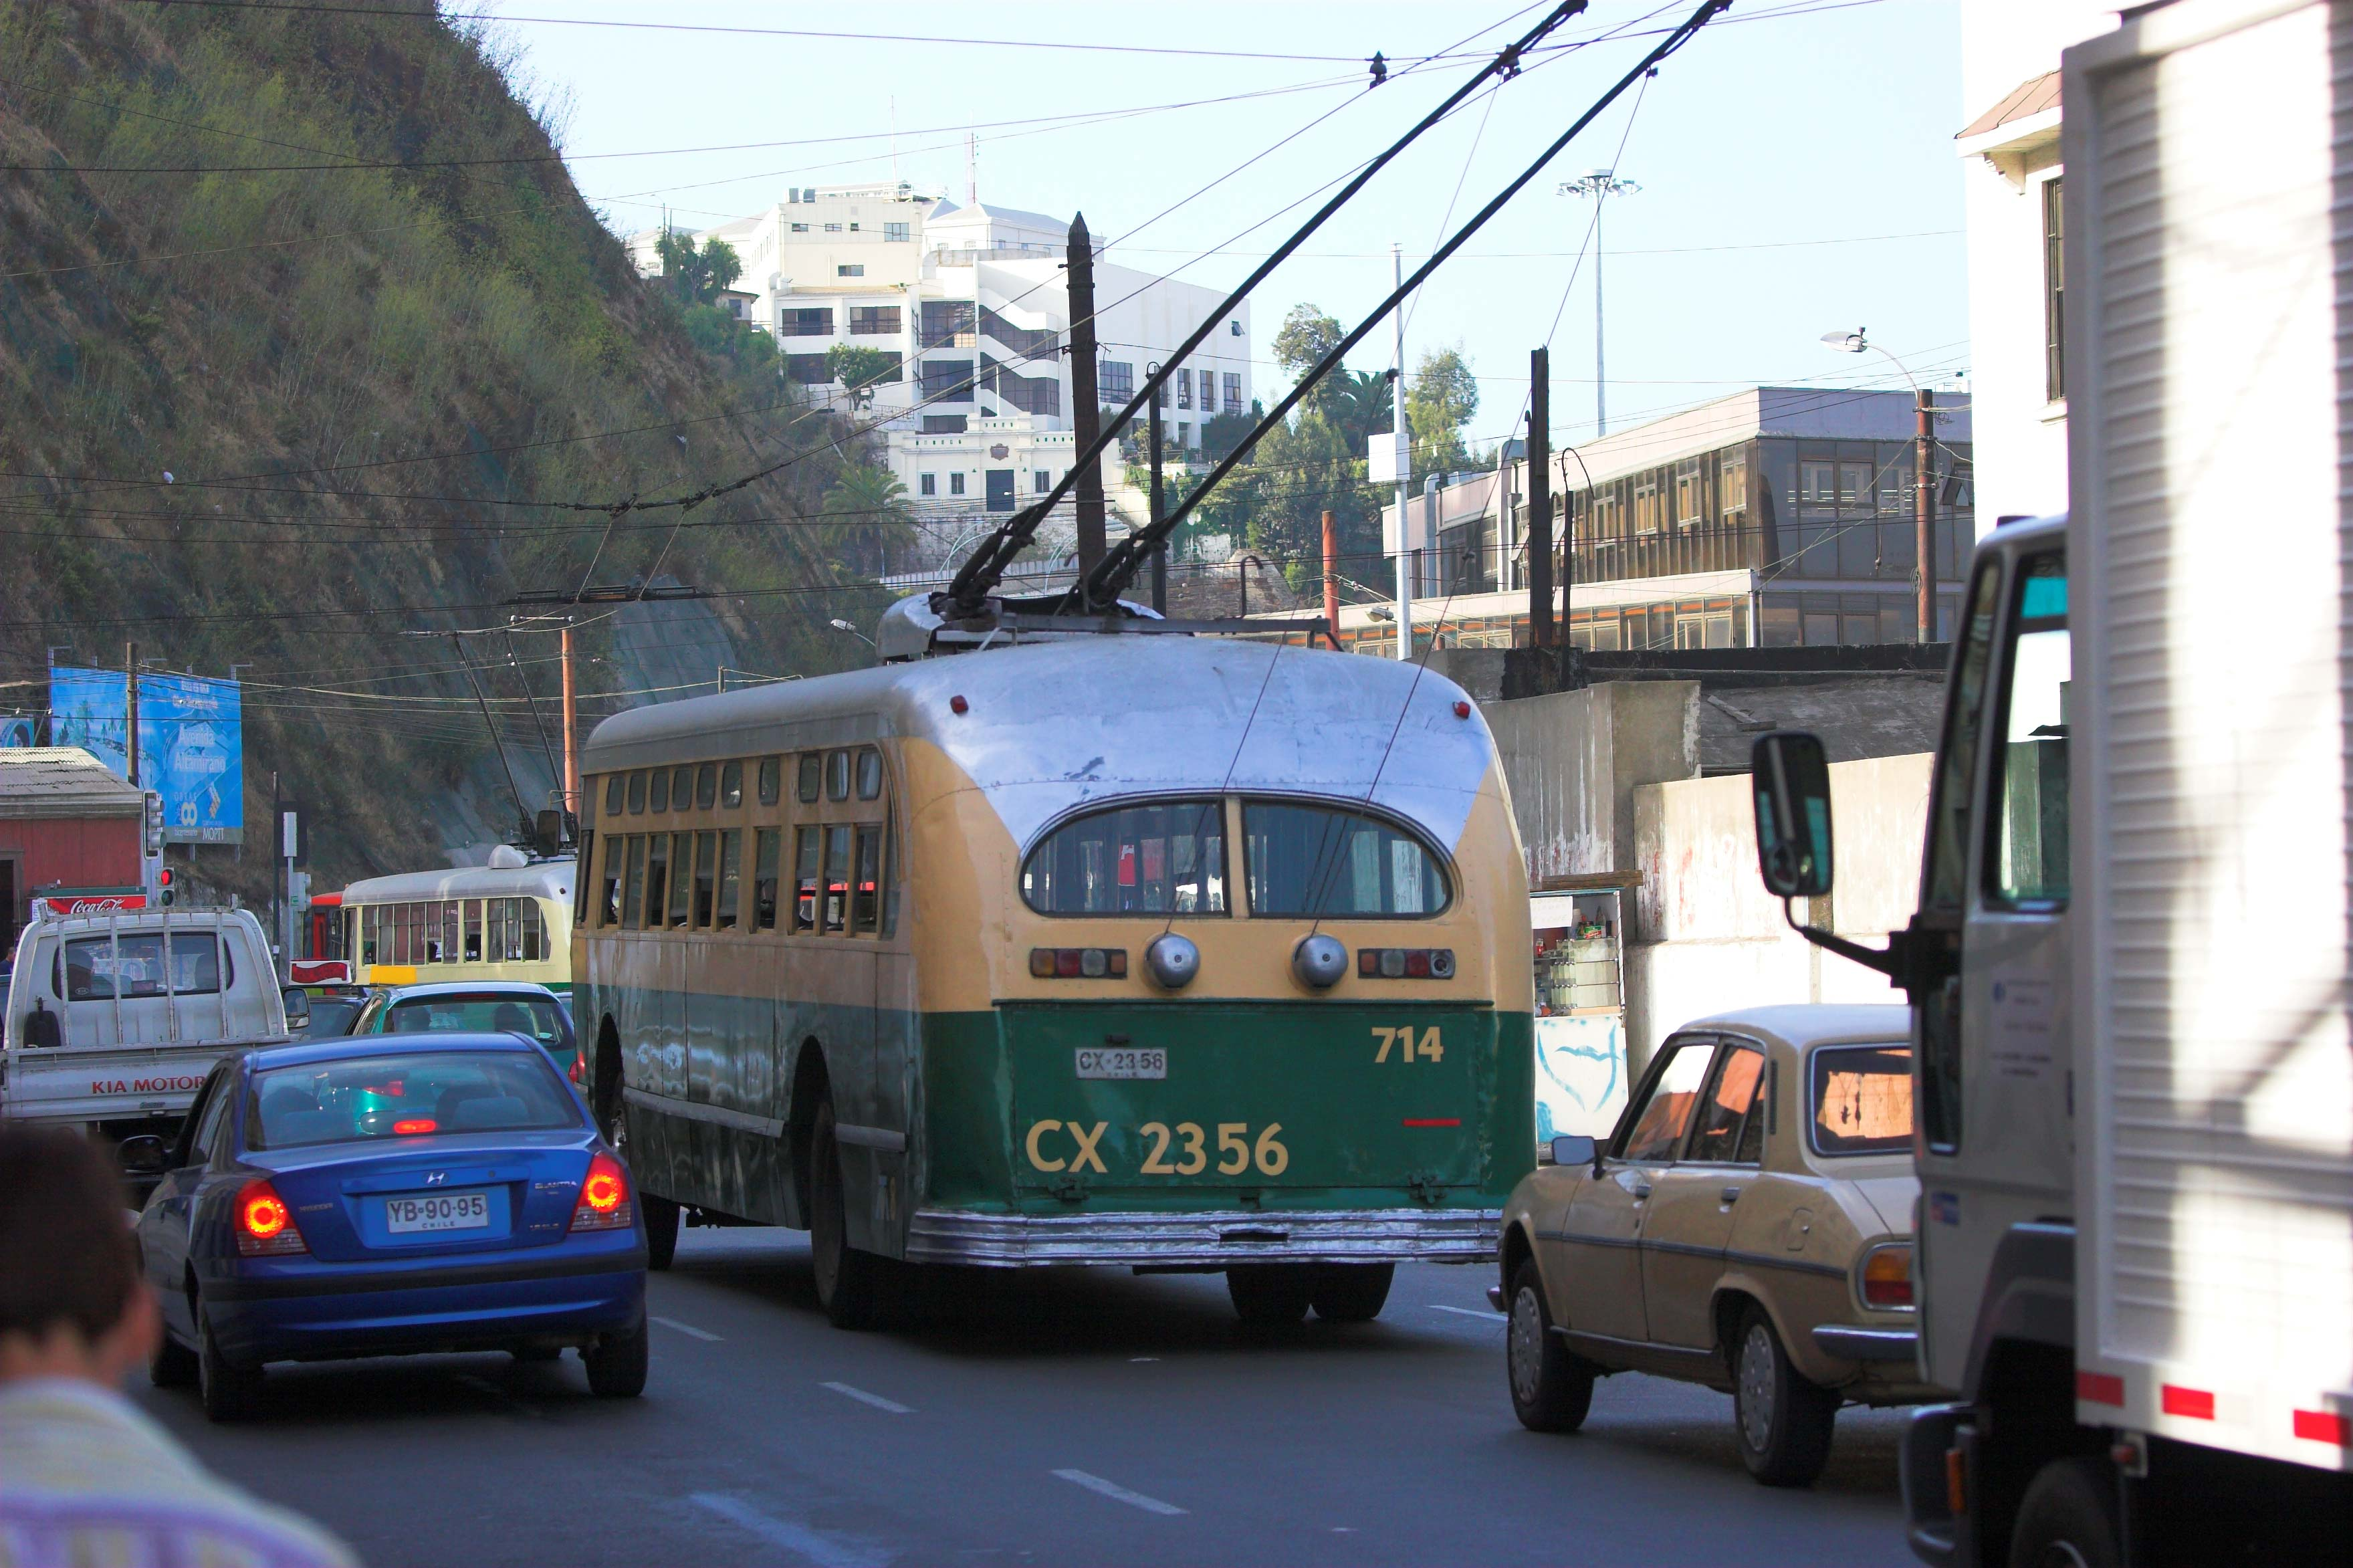 trolleybus2.jpg